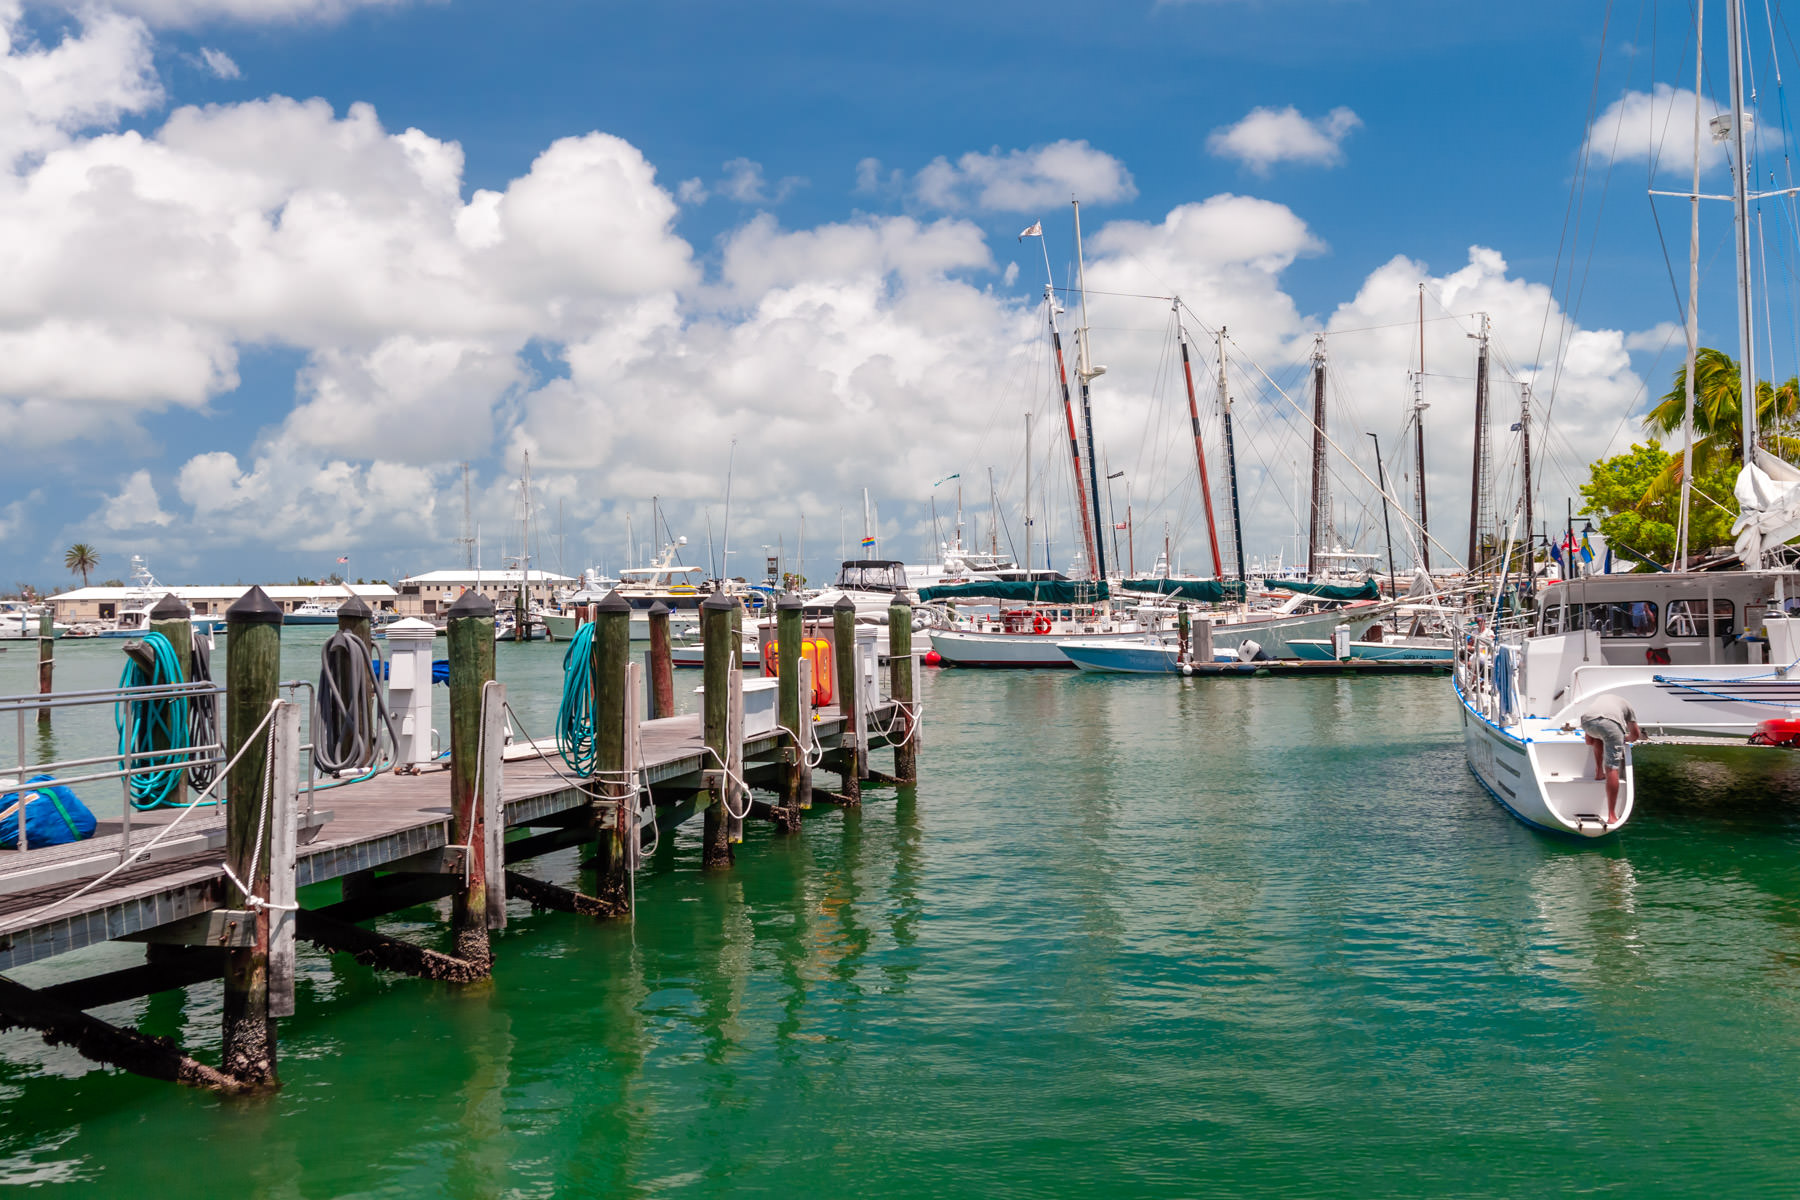 Boats docked in a harbor in Key West, Florida.